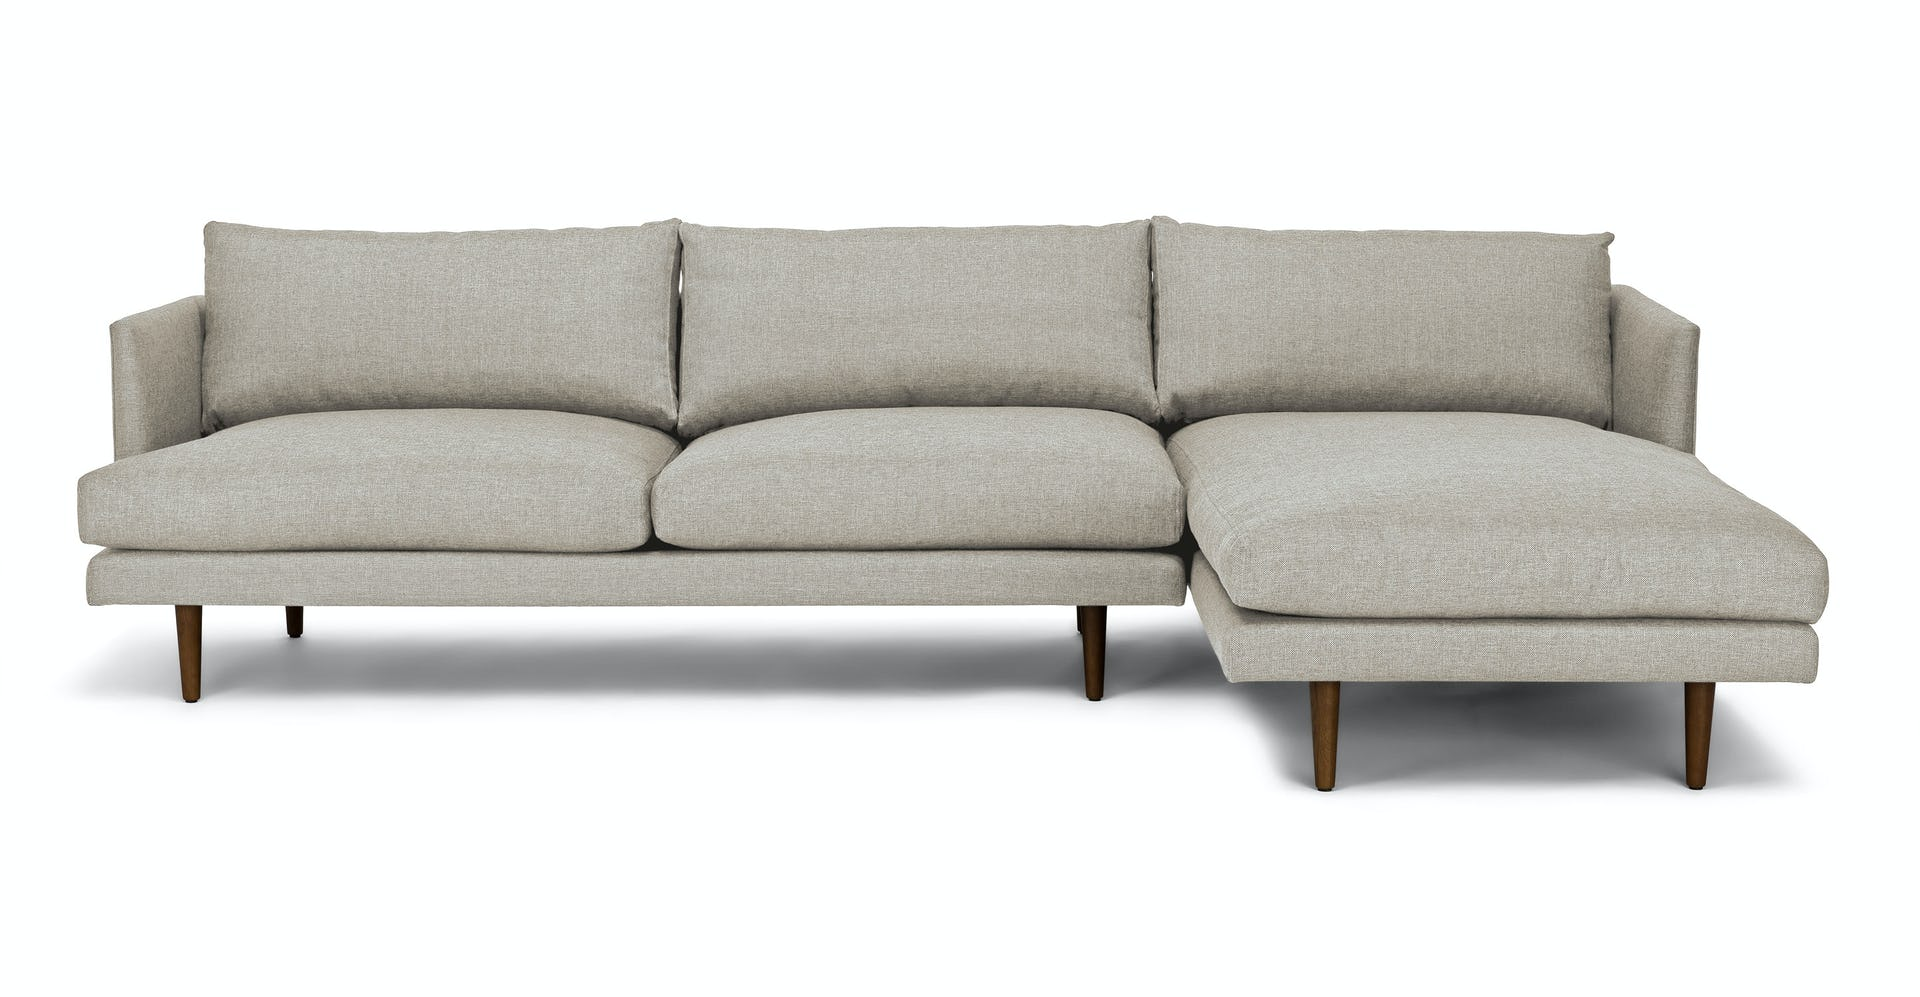 Brilliant Burrard Seasalt Gray Right Sectional Sofa Evergreenethics Interior Chair Design Evergreenethicsorg